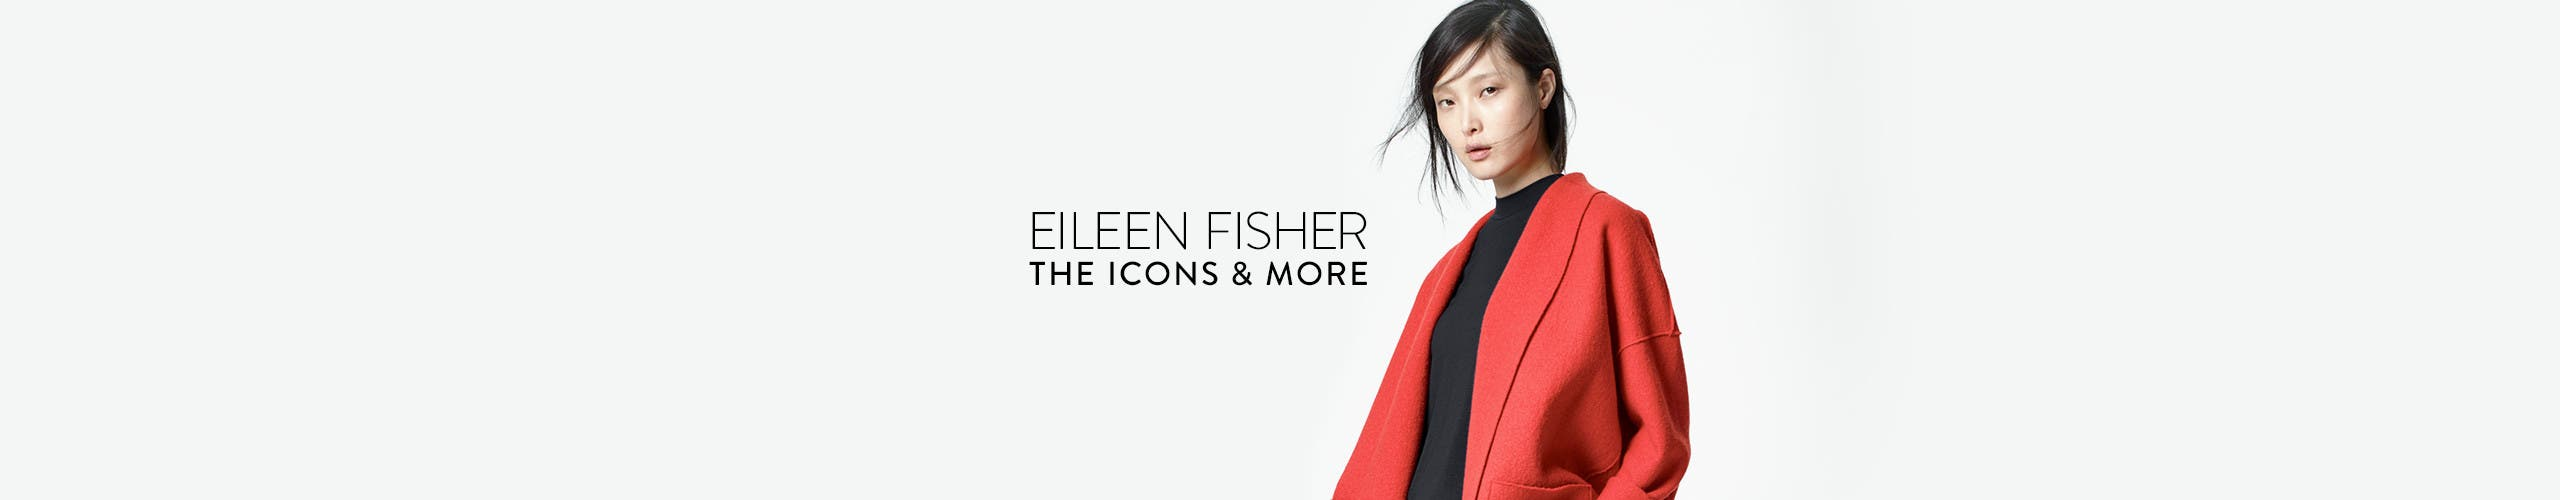 Eileen Fisher clothes for women: the icons and more.